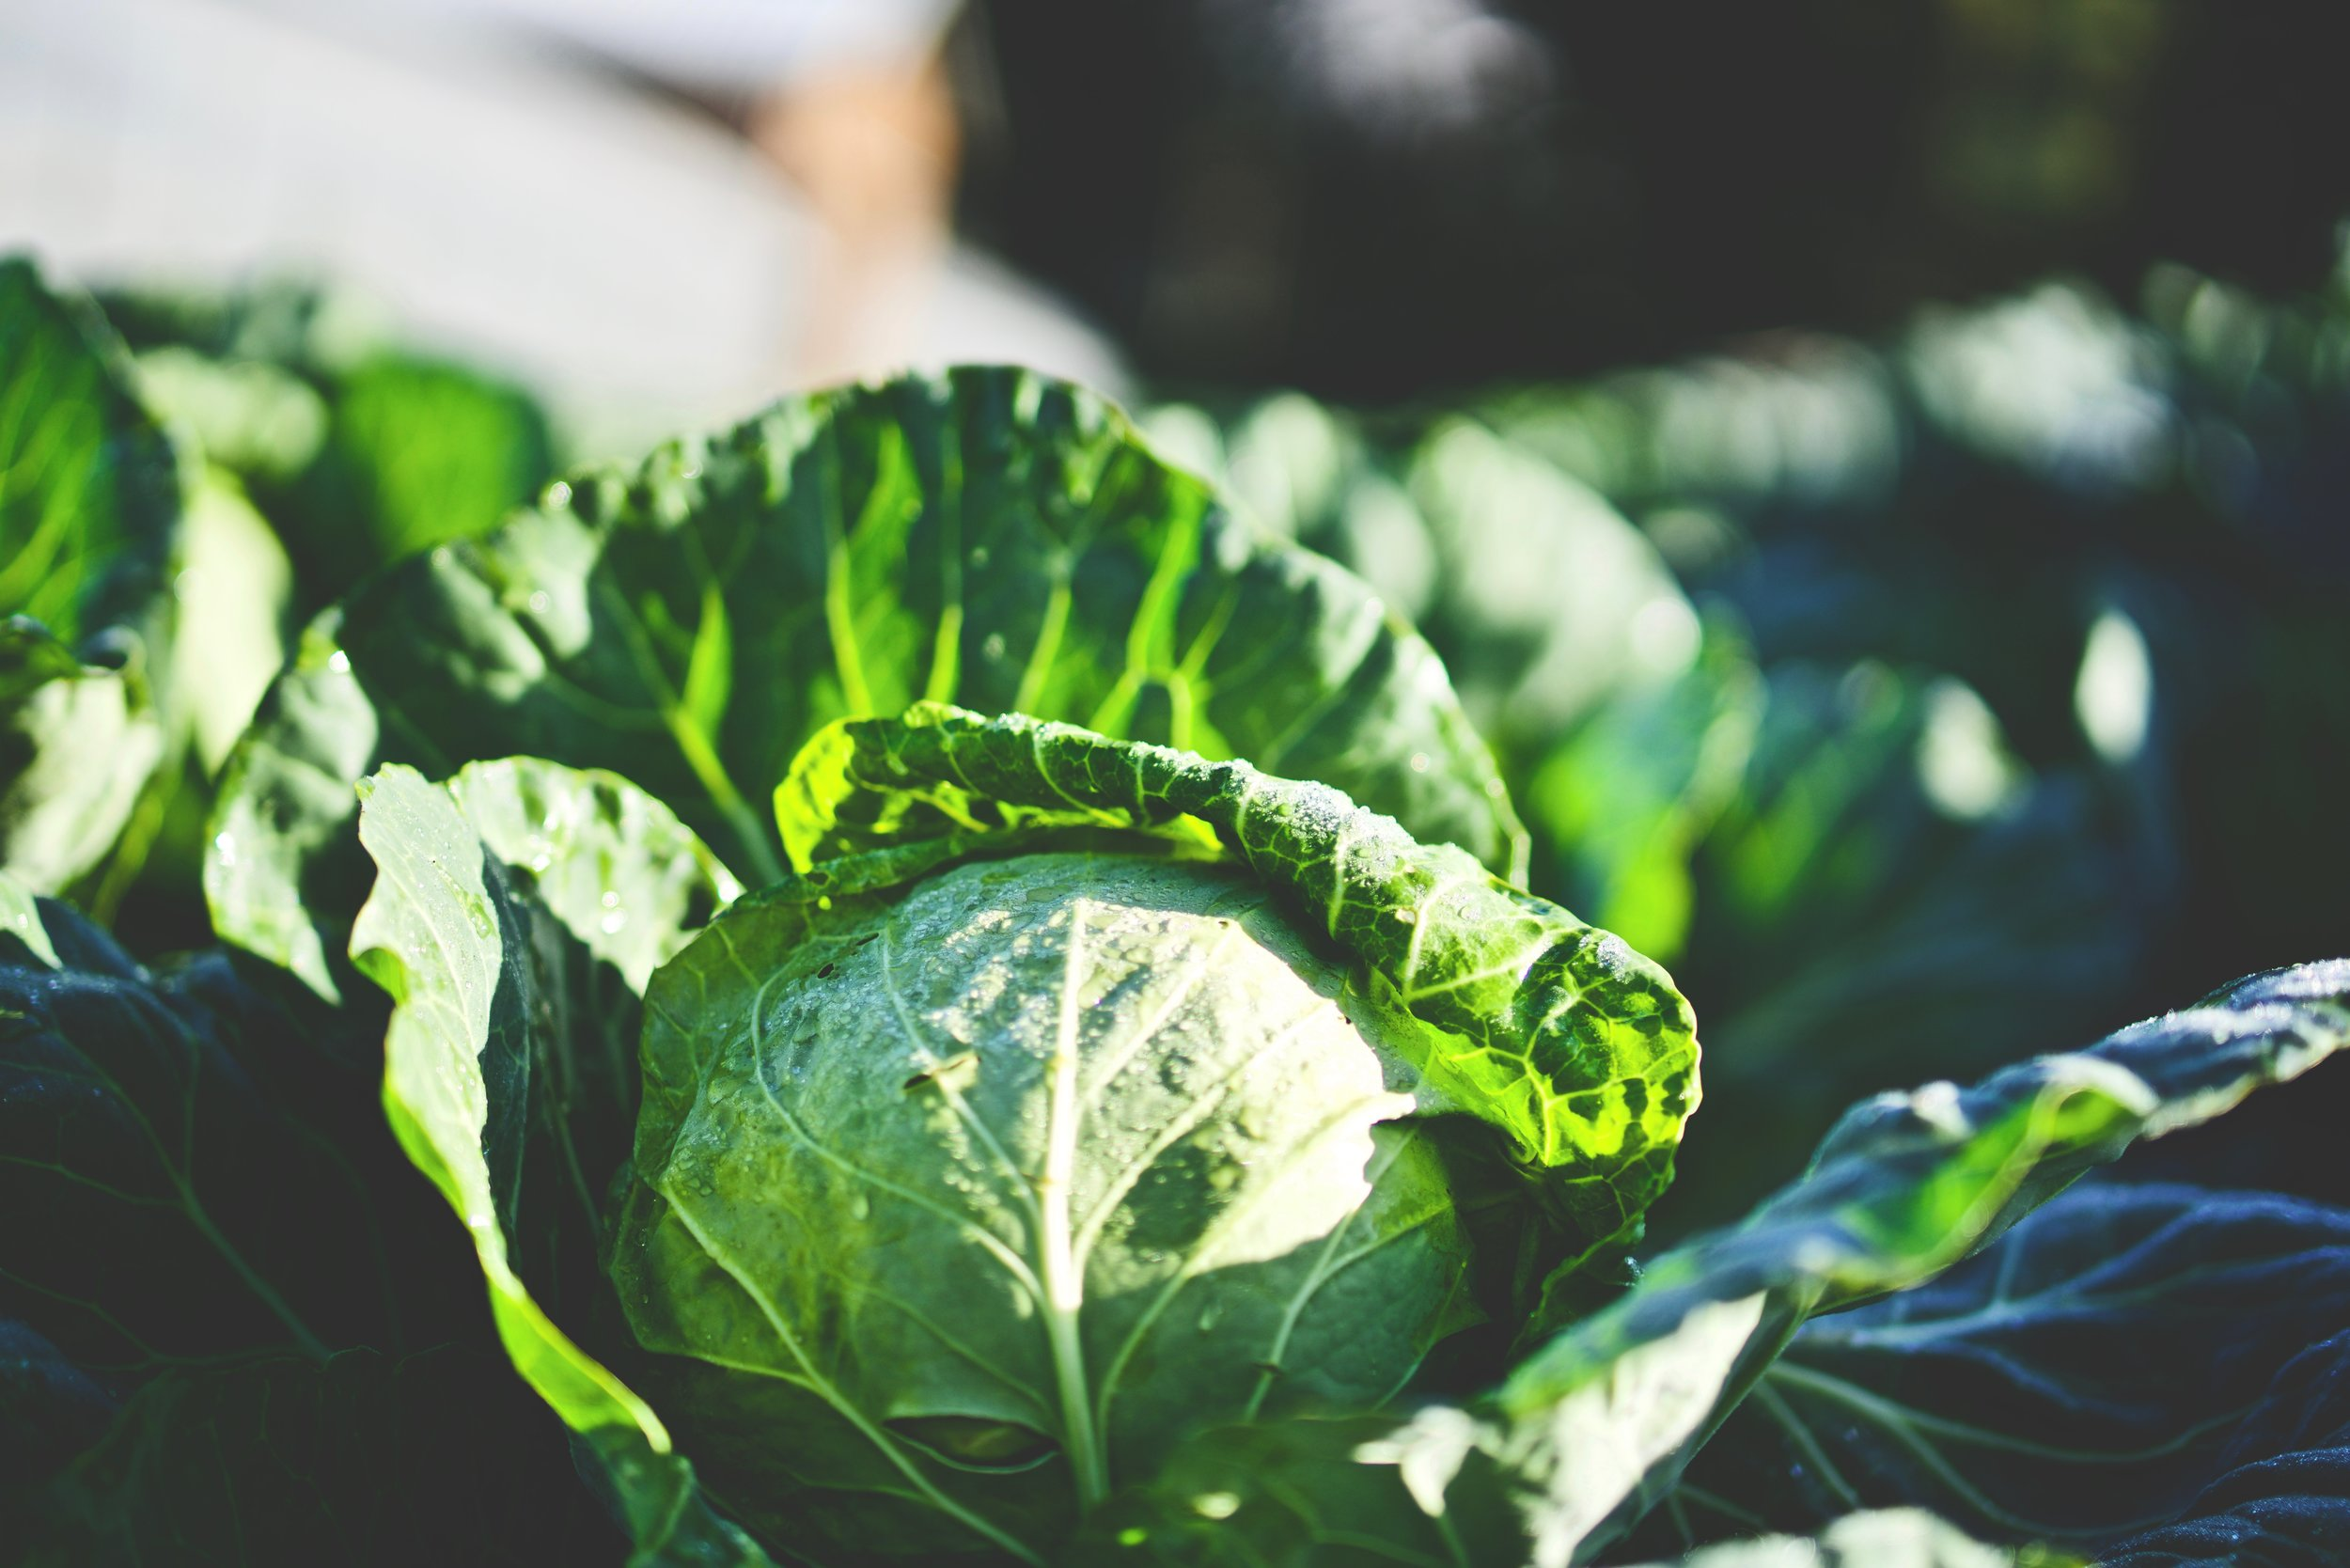 Cabbage juice has been used for thousands of years to treat ailments of the digestive tract. We combine it with other vegetables to provides extra nutrition!